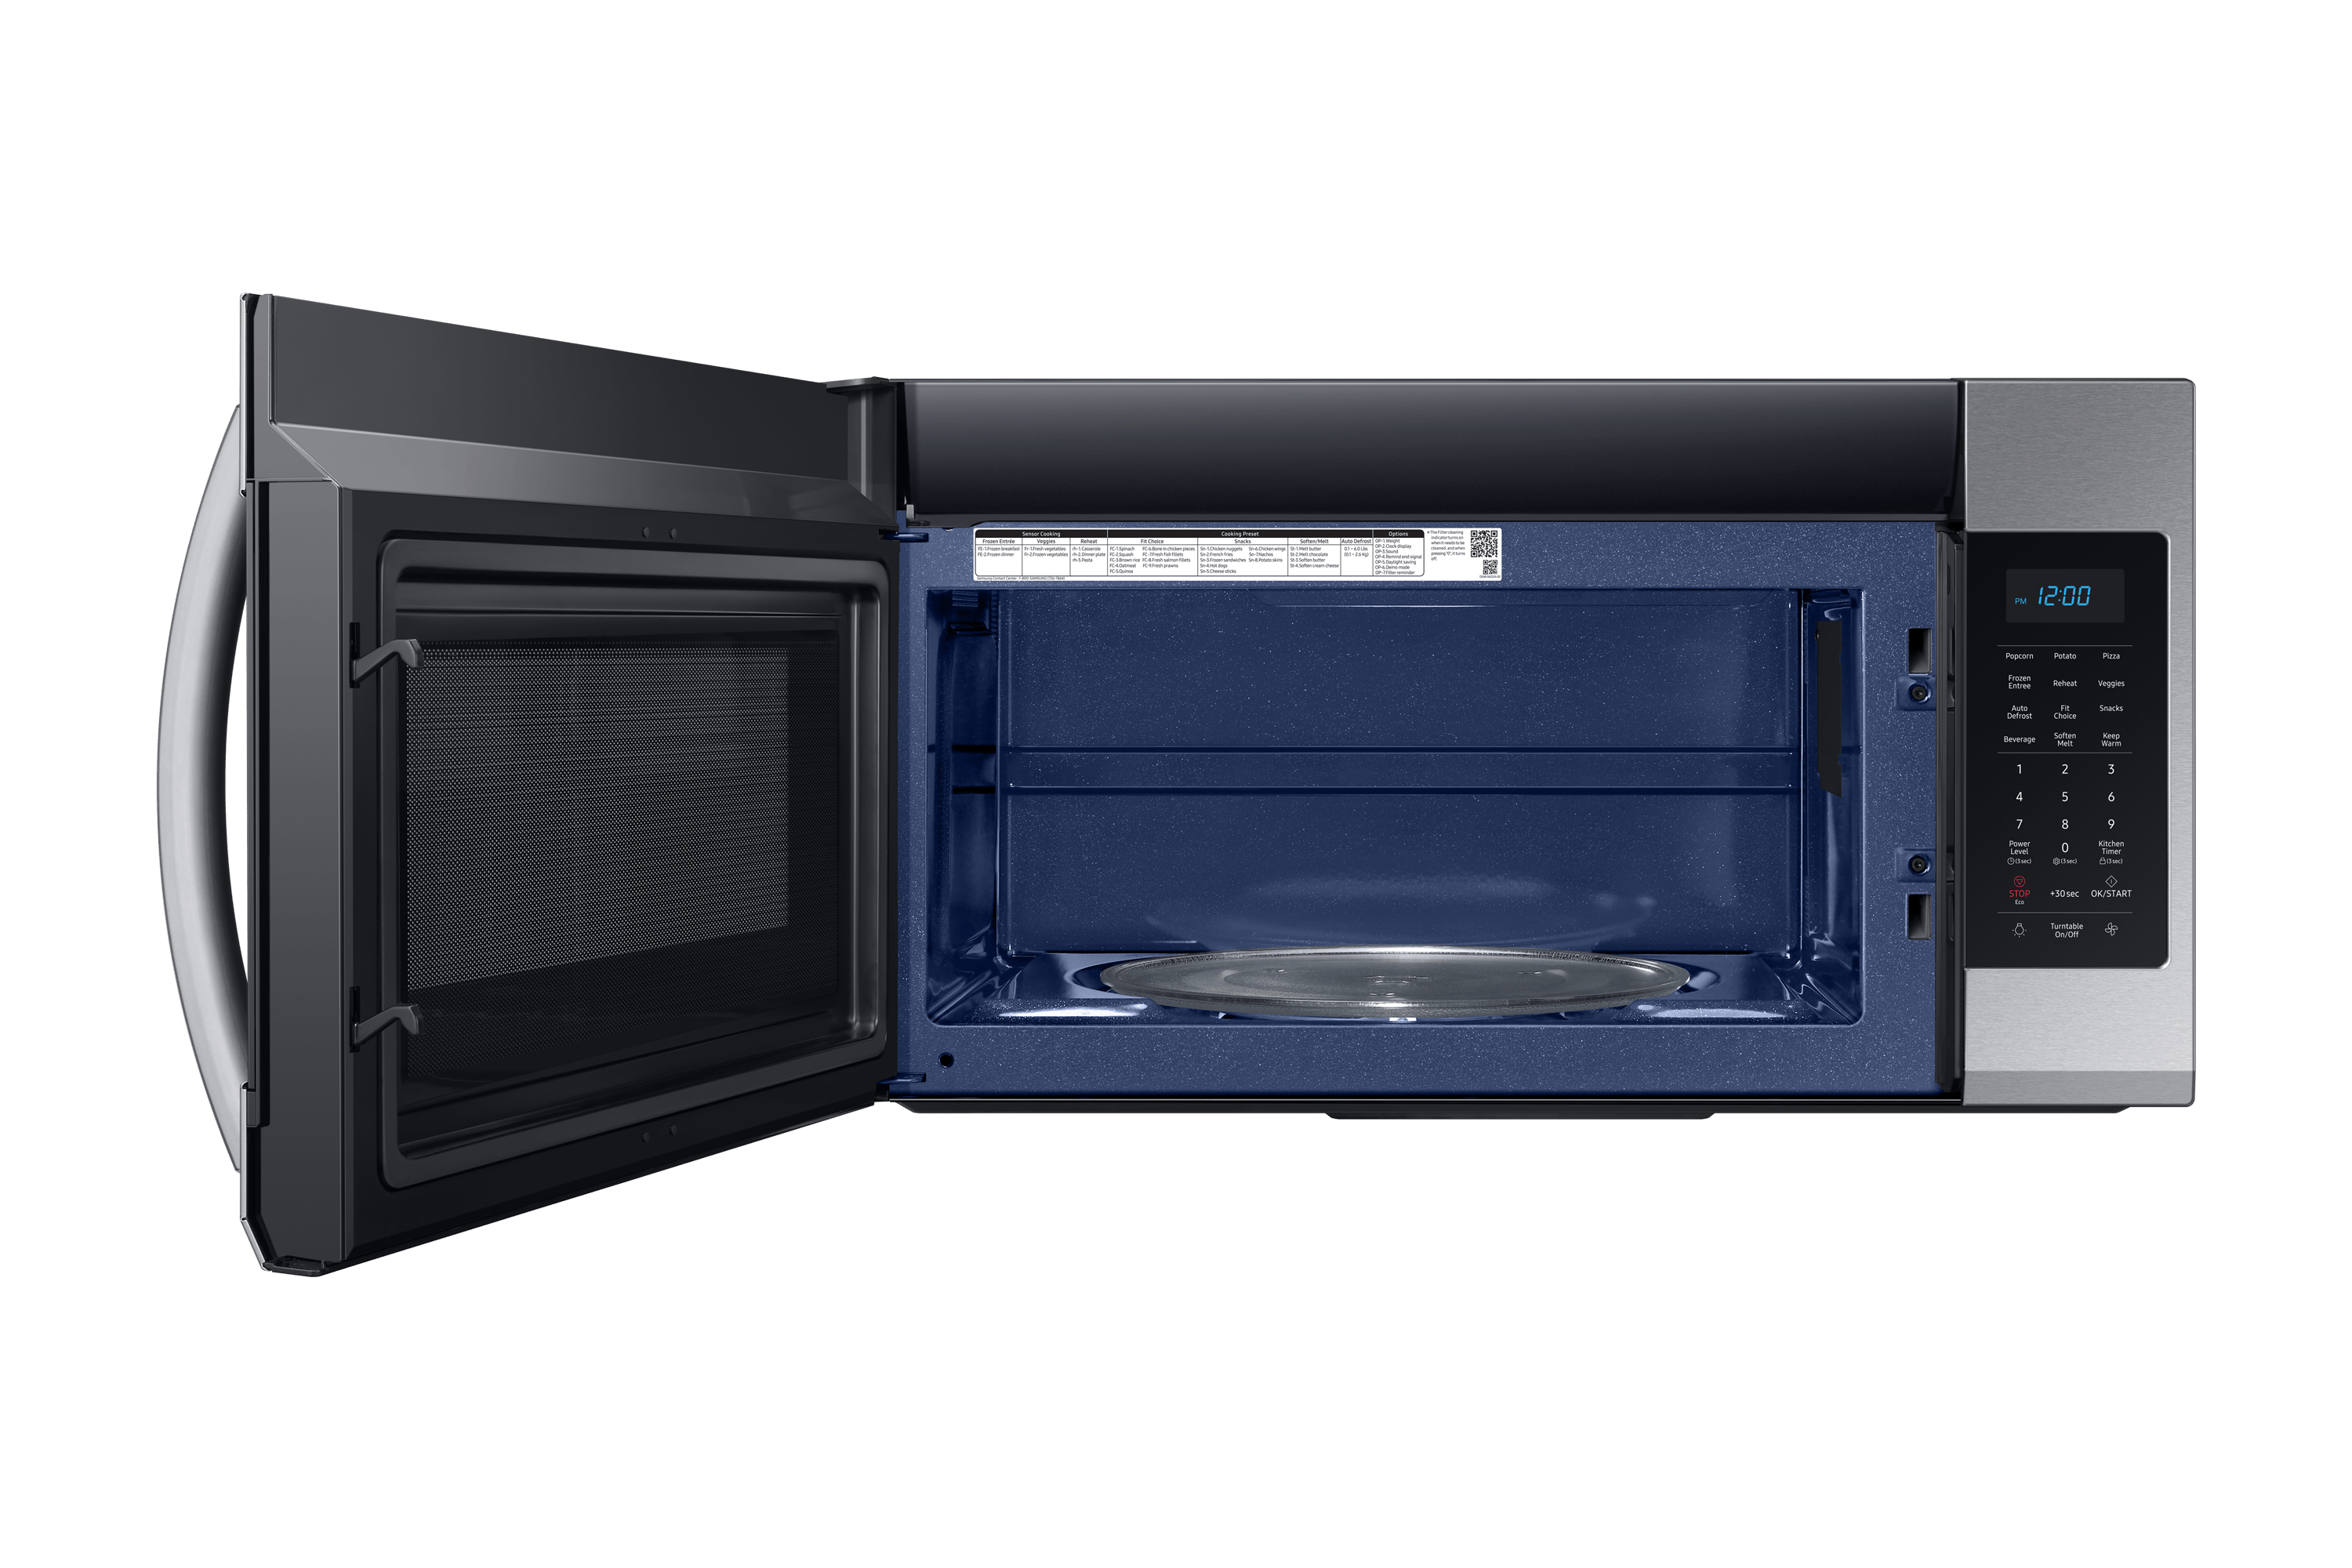 me19r7041fs 1 9 cu ft over the range microwave stainless steel